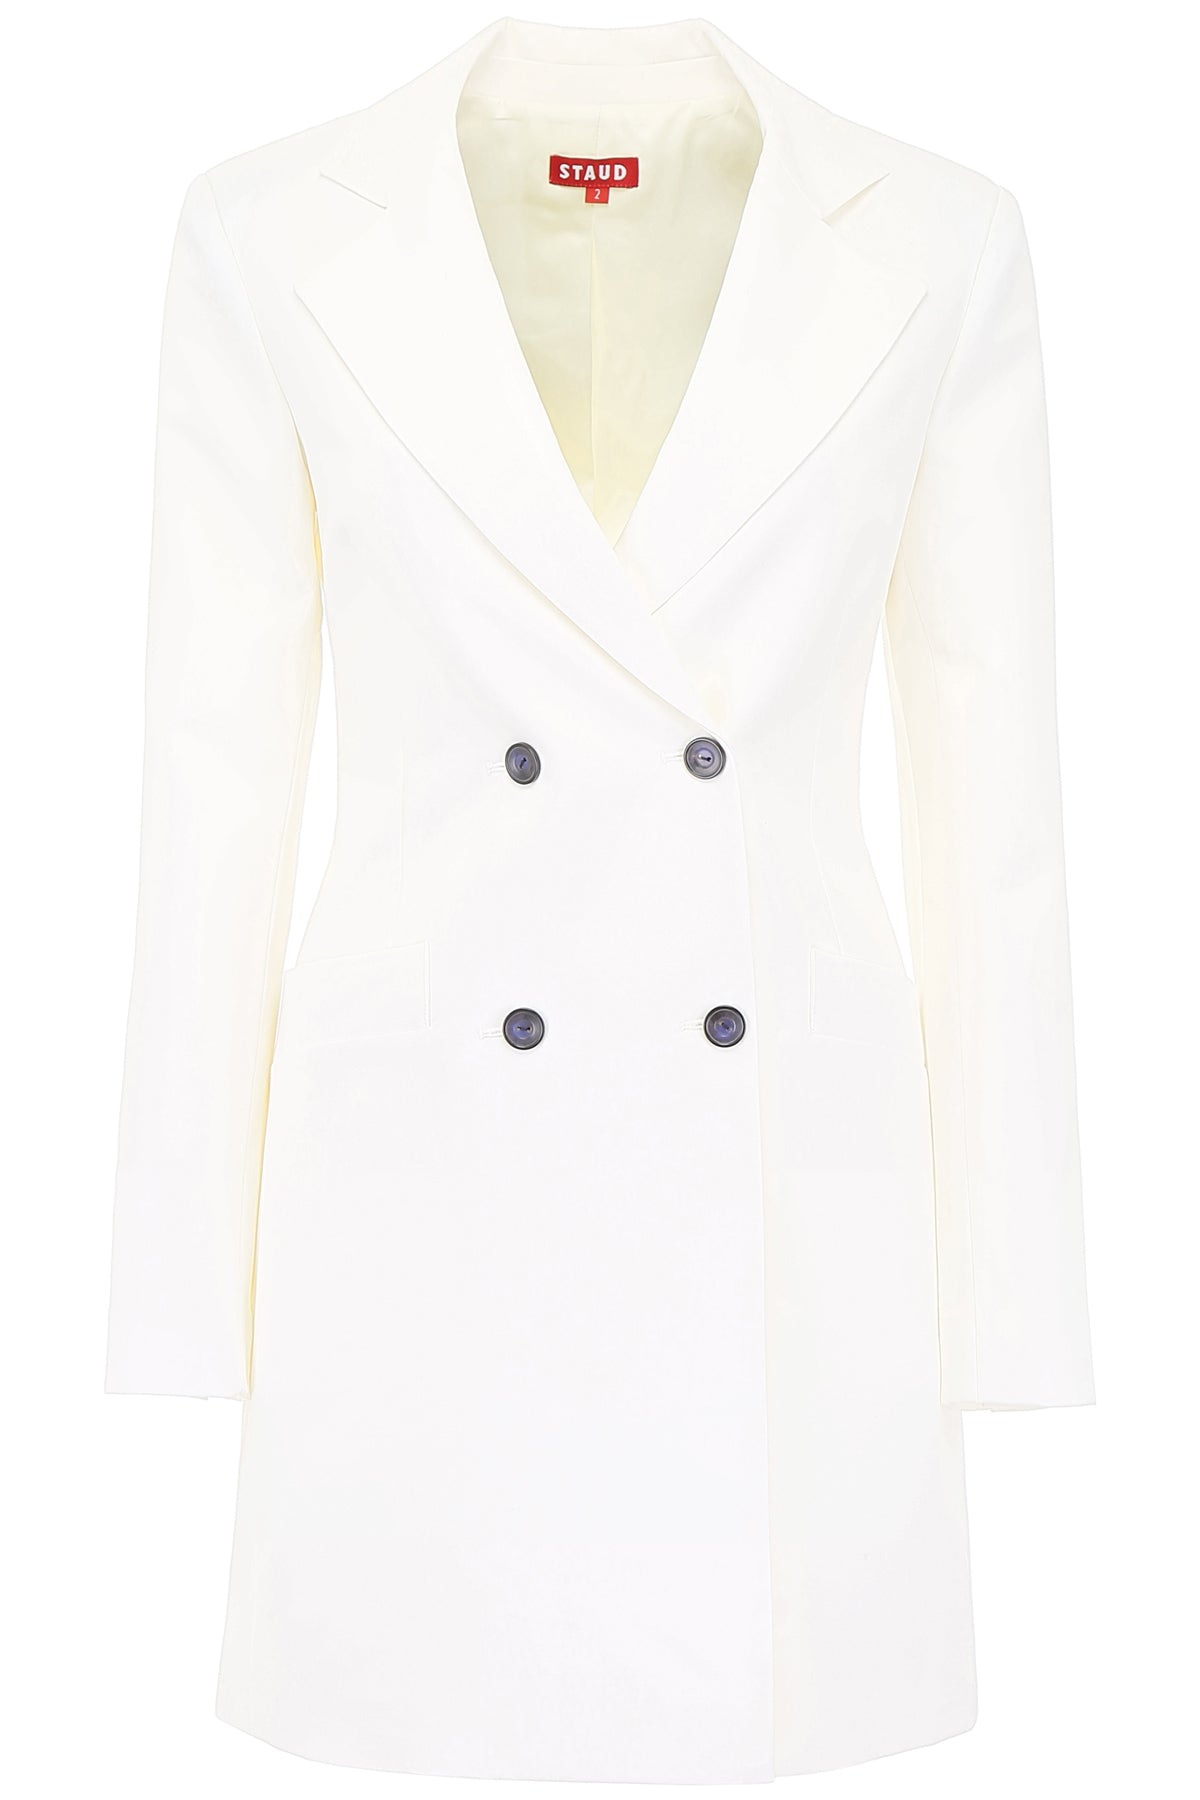 Staud Blazers STAUD ROXY BLAZER MINI DRESS